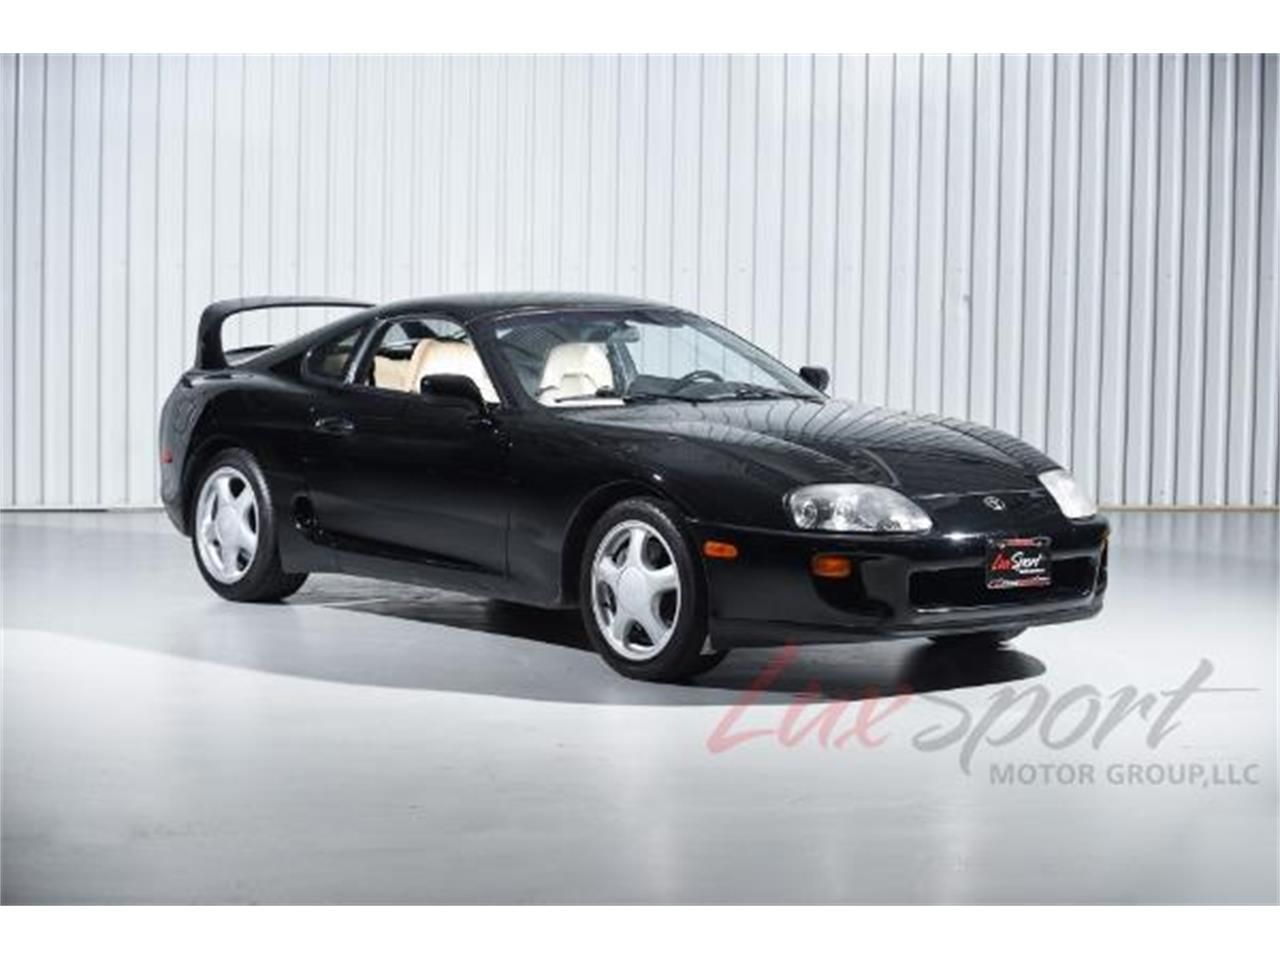 Large Picture of 1994 Supra Auction Vehicle Offered by LuxSport Motor Group, LLC - LRMX